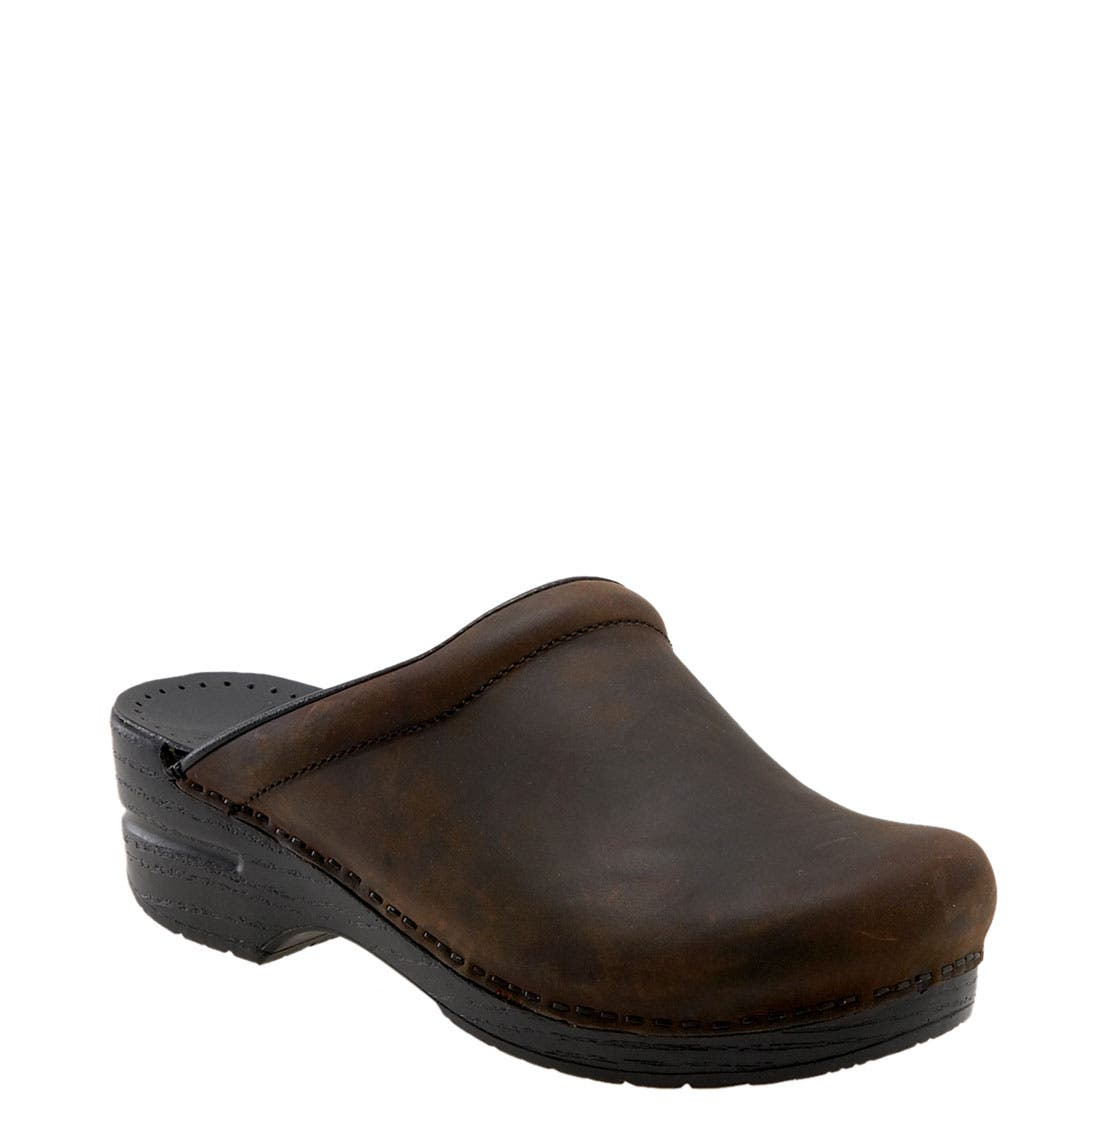 'Sonja' Oiled Leather Clog,                         Main,                         color, Antique Brown Oiled